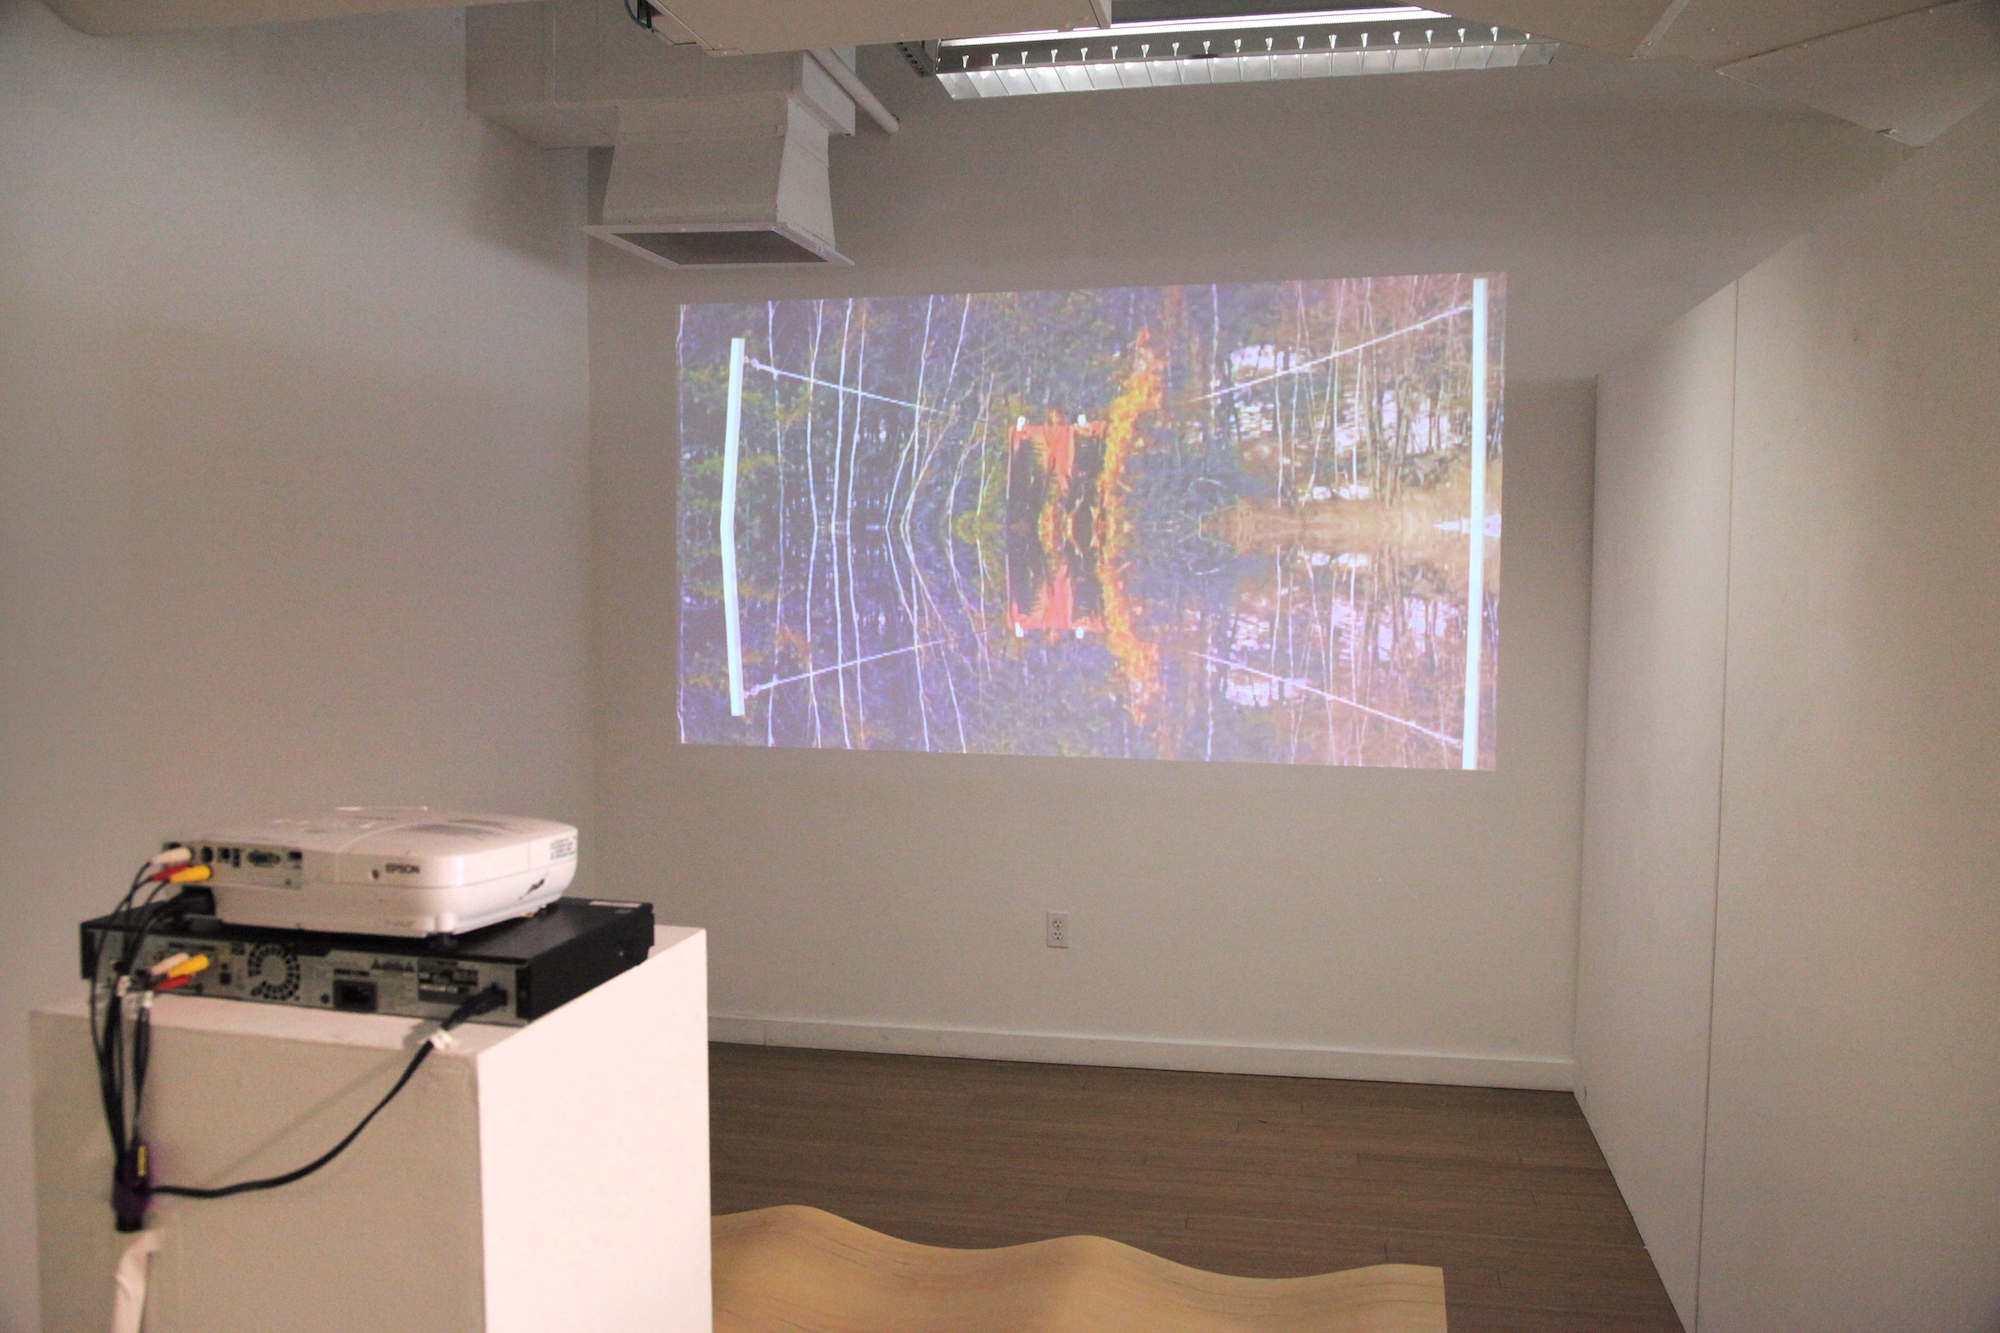 Featured Geena Matuson projection of multimedia series 'Liar Liar.' / Geena Matuson's (@geenamatuson) TransFIREmation Gallery Show & Installation in the MassArt Student Life Gallery in Boston, MA, US.